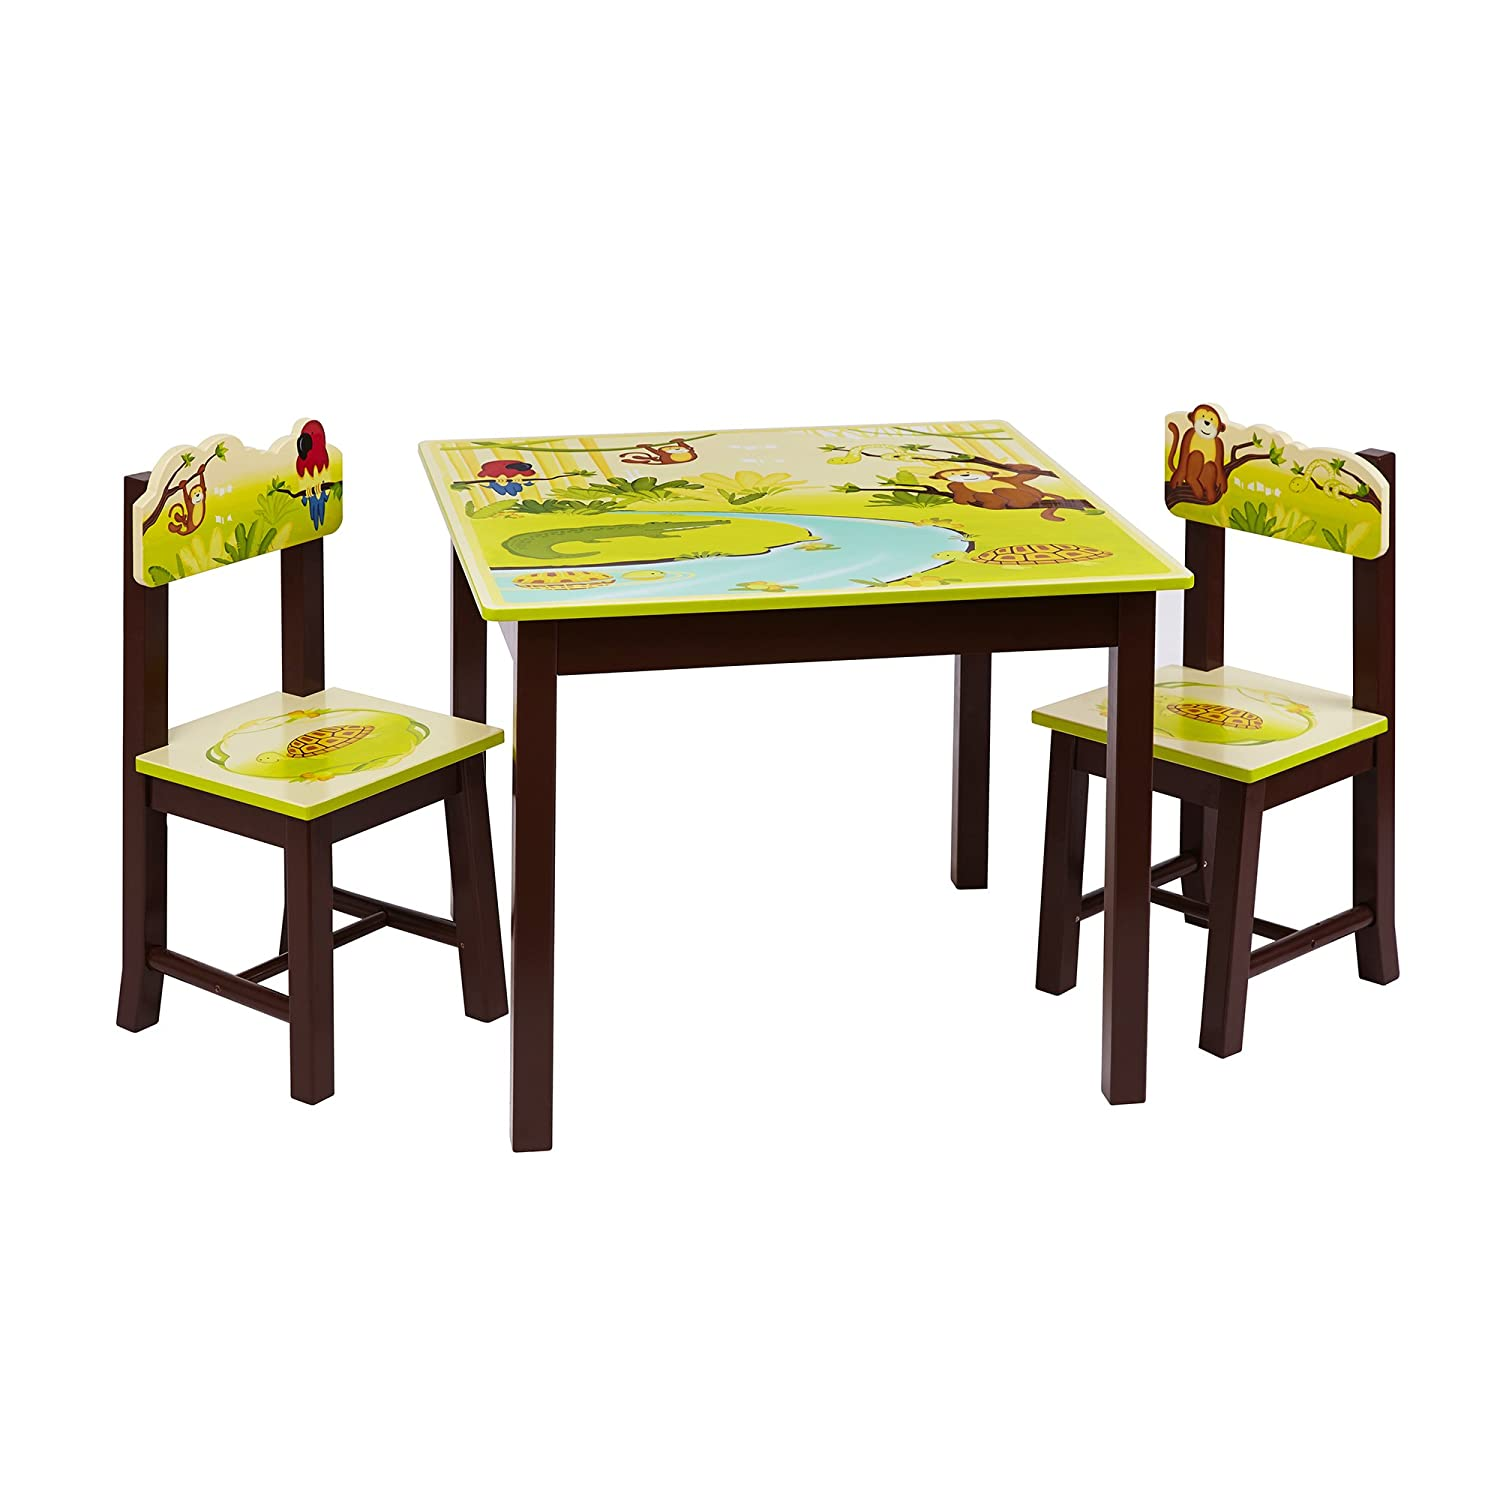 Amazon.com: Guidecraft Hand-painted Jungle Party Table & Chairs Set ...